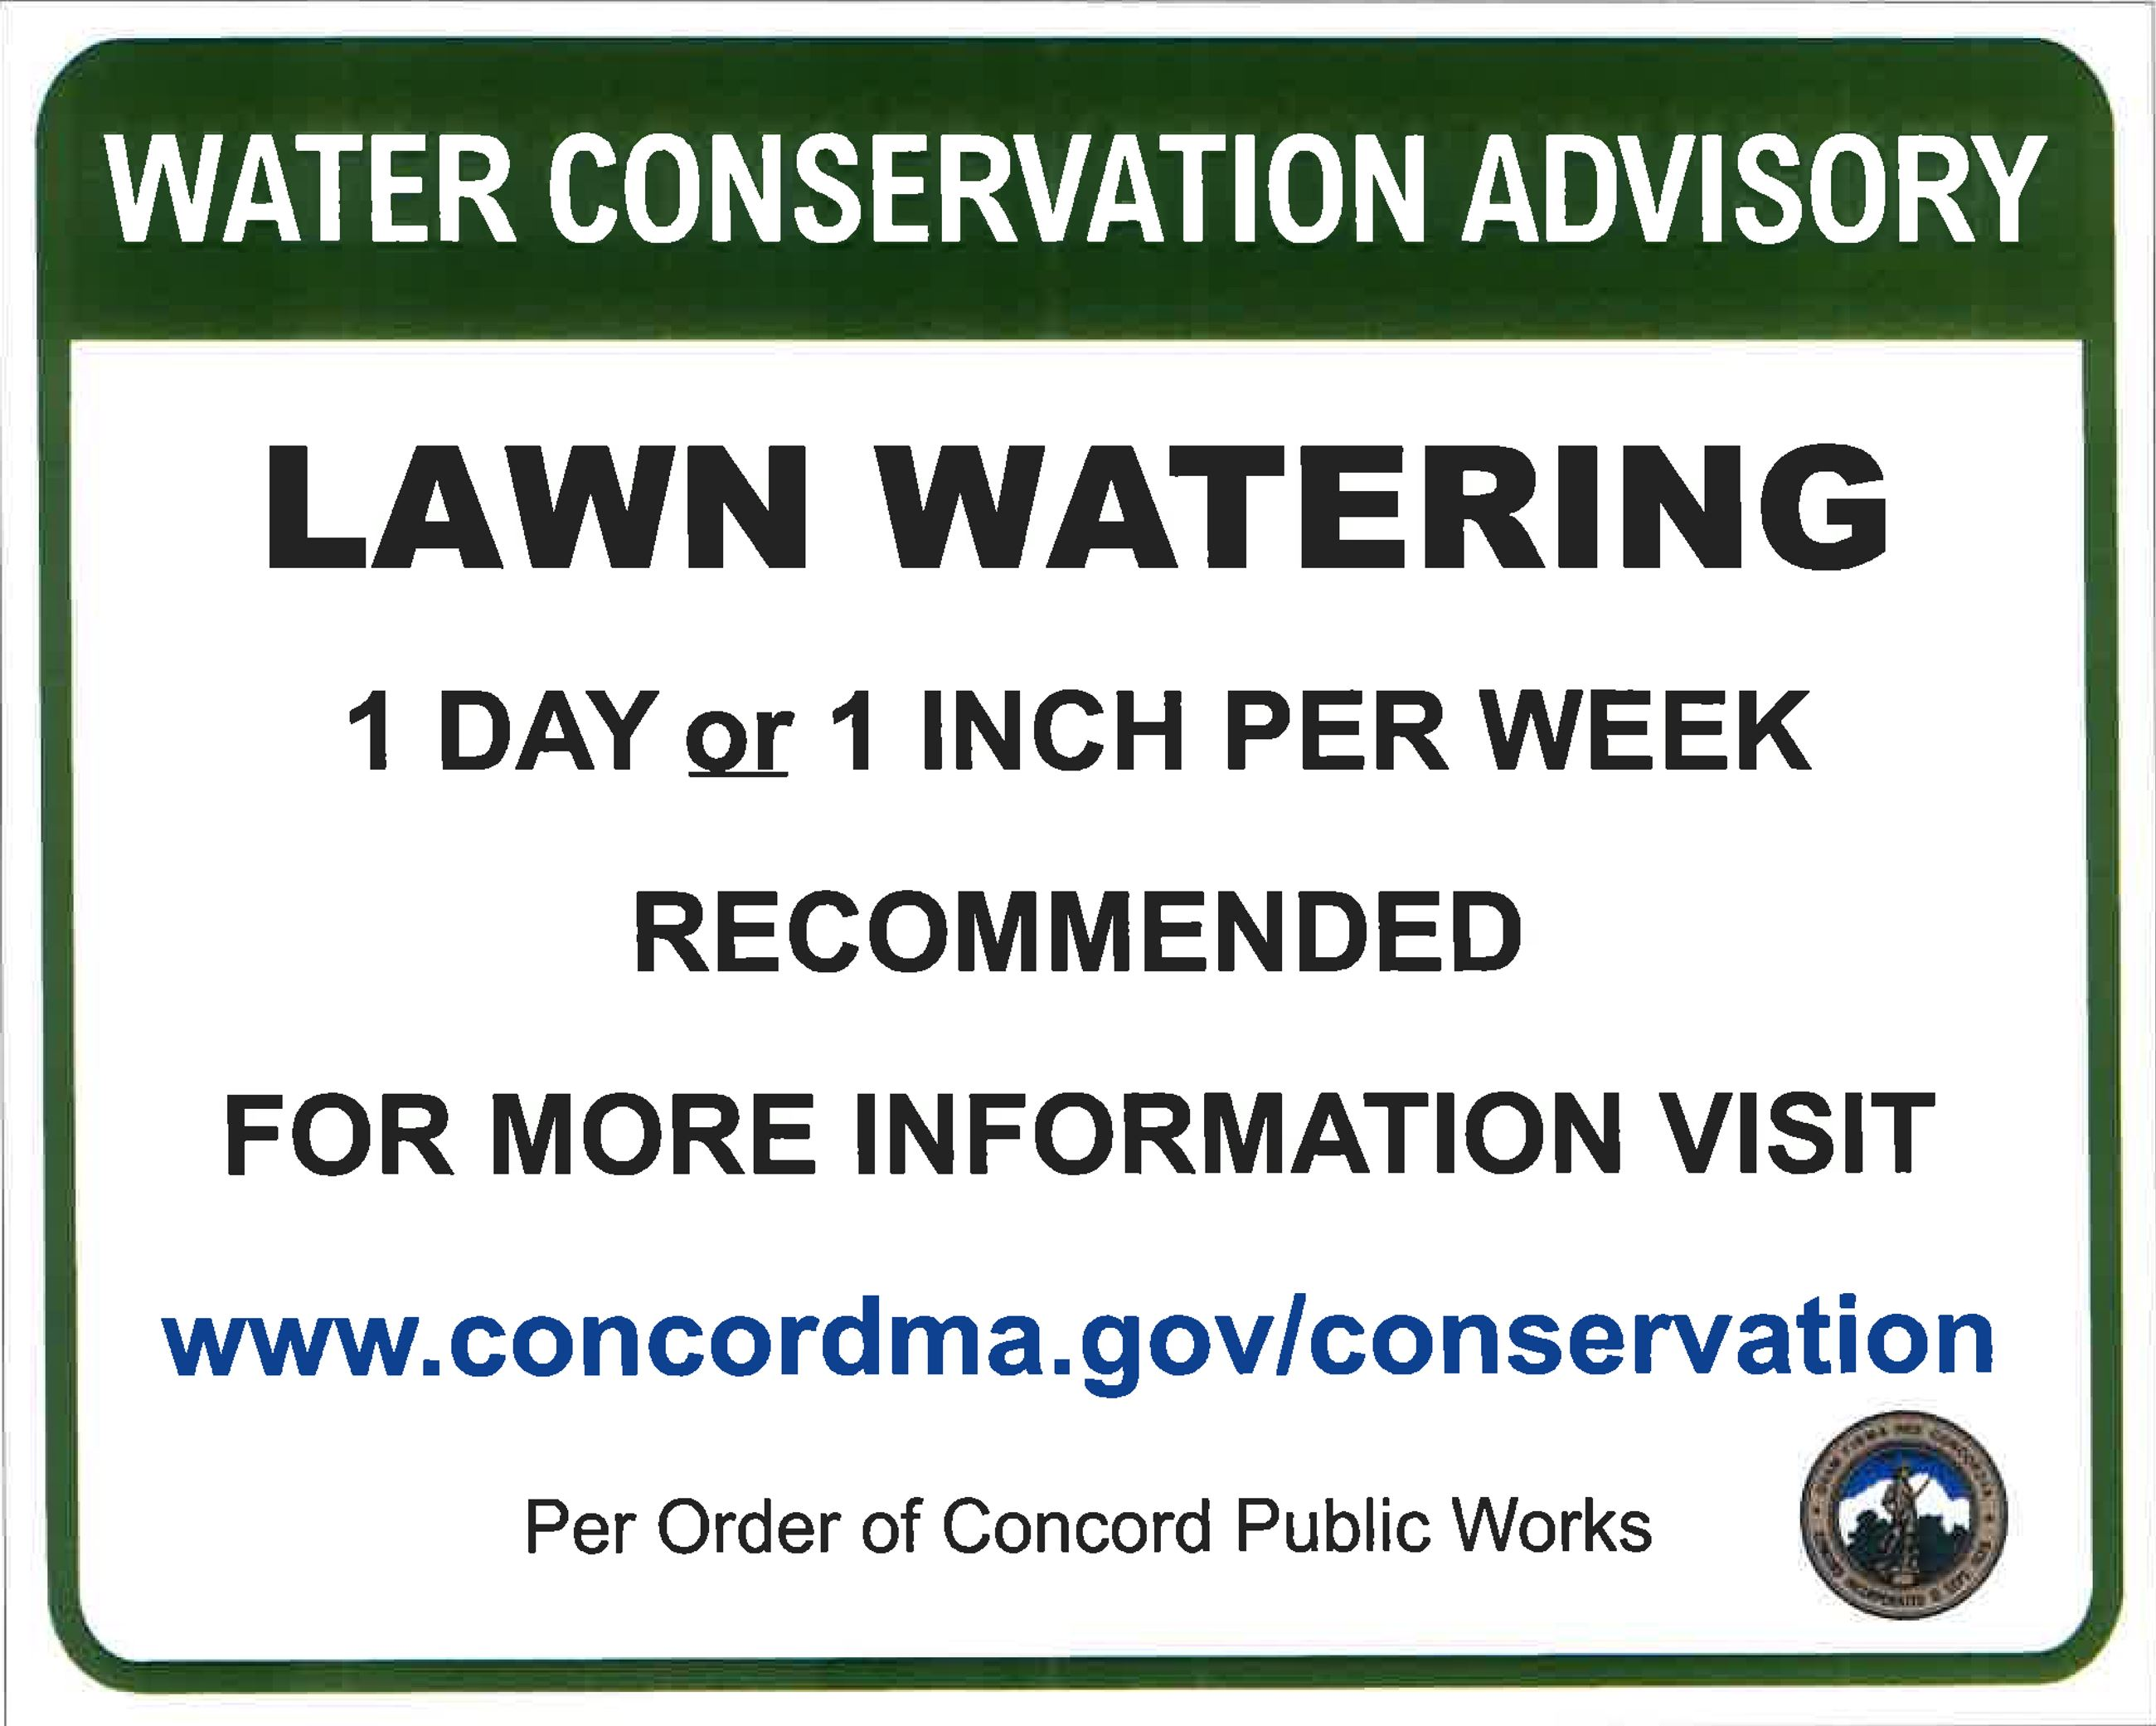 Water Conservation Advisory - Street Sign